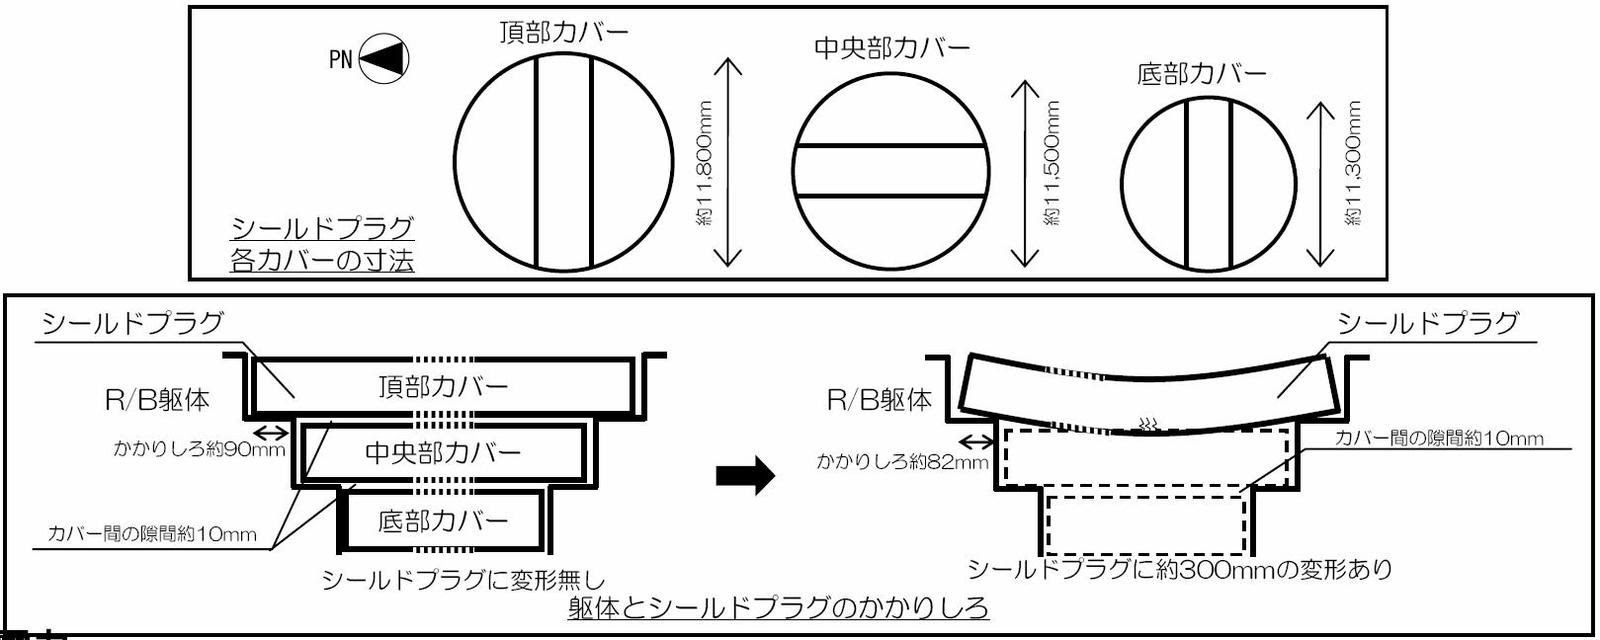 Fig. 69 : Etat des dalles antimissiles (source Tepco)